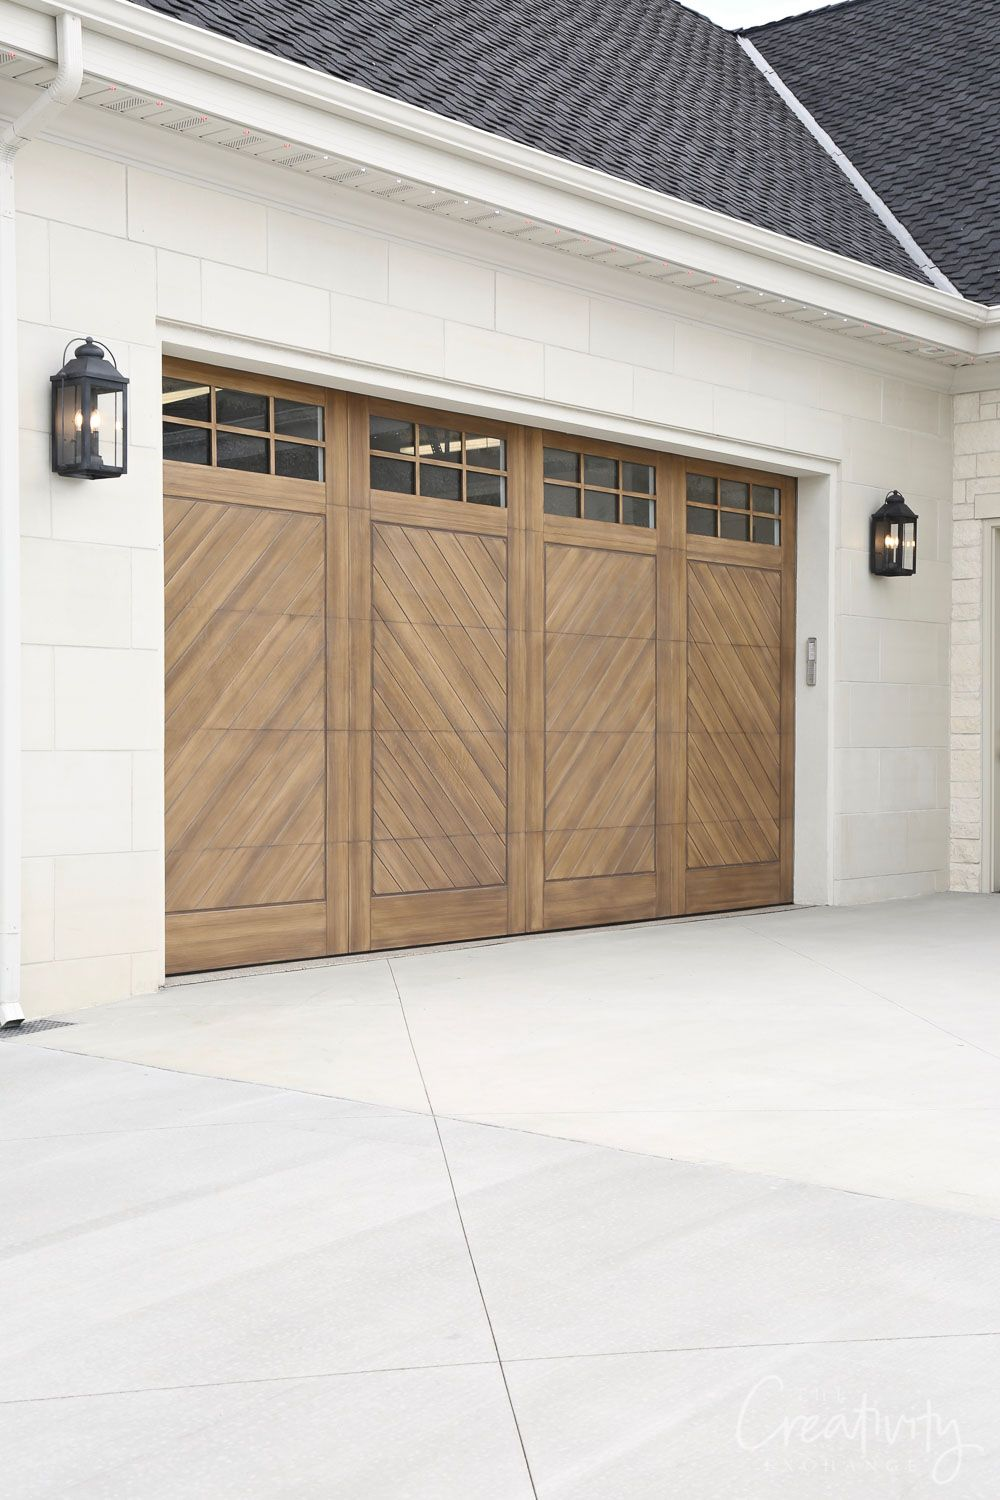 Utah Valley Parade Of Homes 2019 Garage Door Design Modern